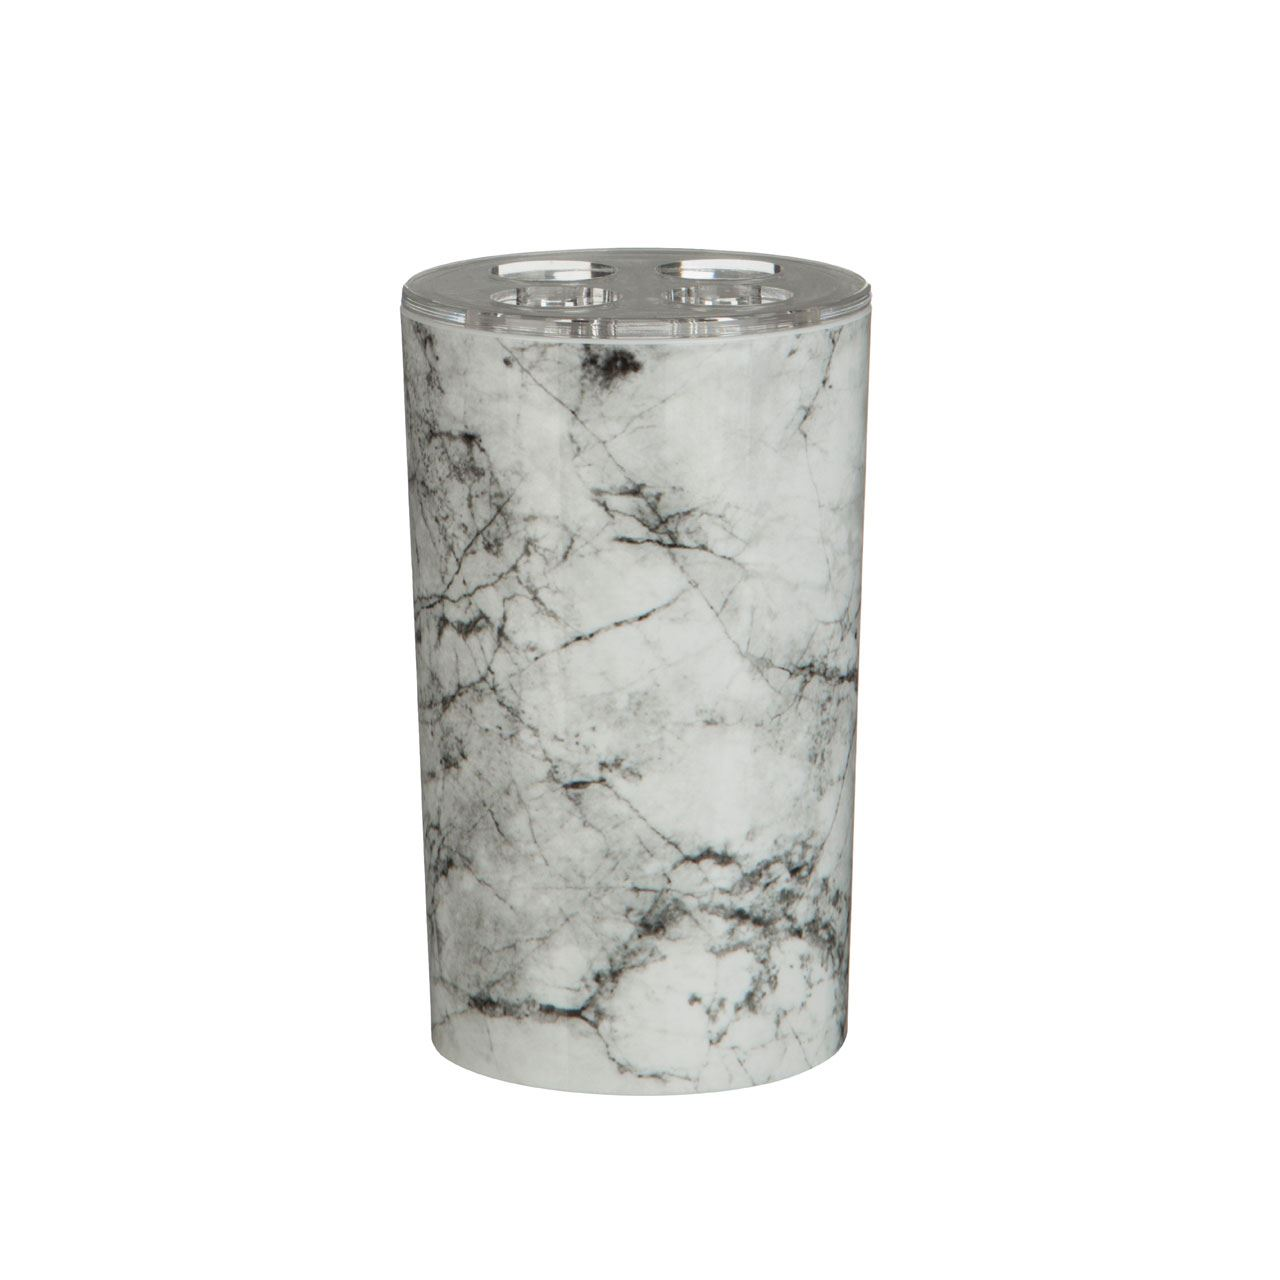 Rome Toothbrush Holder,Marble Effect,Abs Plastic